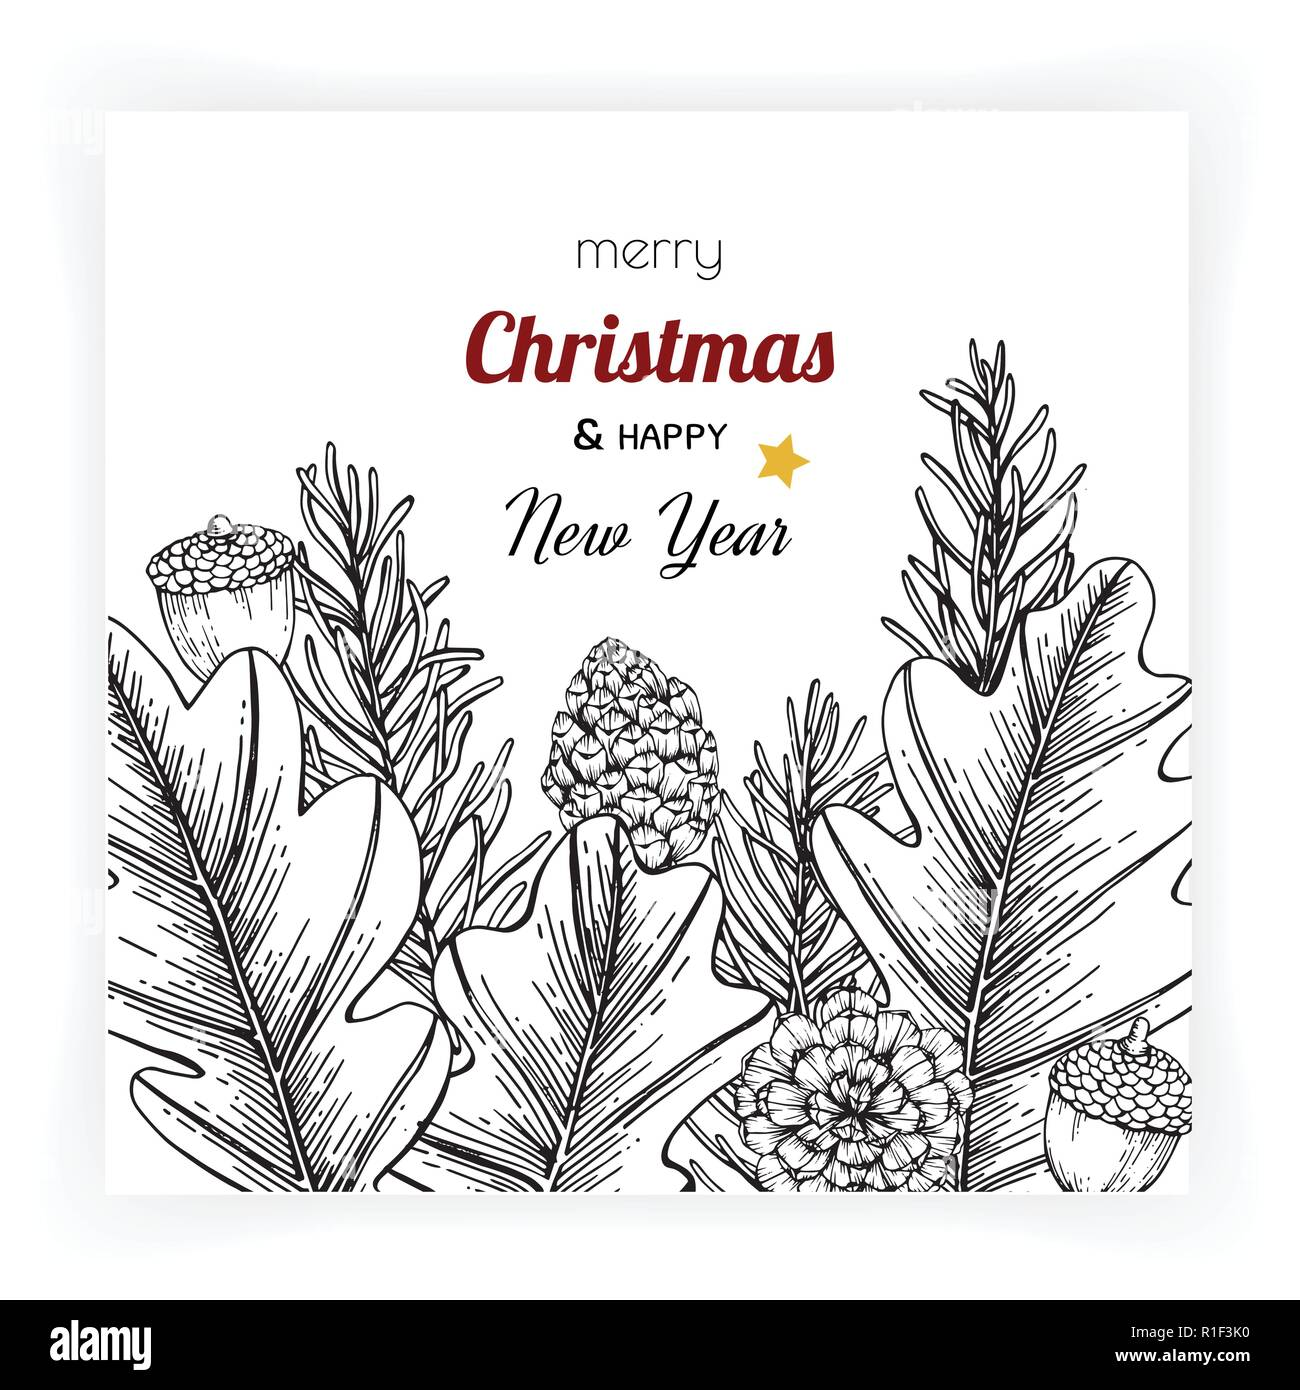 christmas and new year backgrounds and greeting card with flower and leaf hand drawn illustration